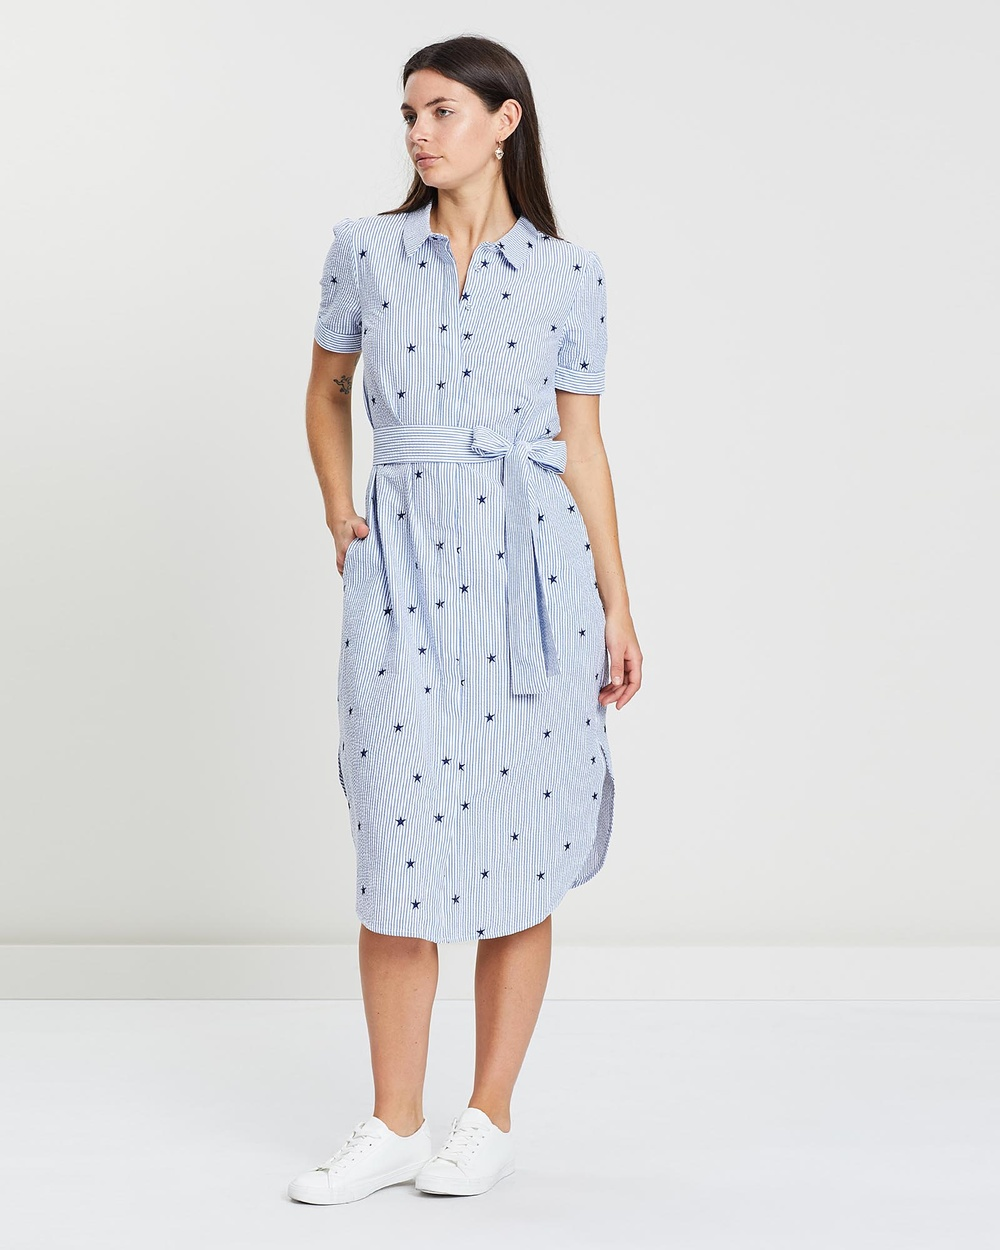 MESOP Star Stripe Hibiscus Midi Shirt Dress